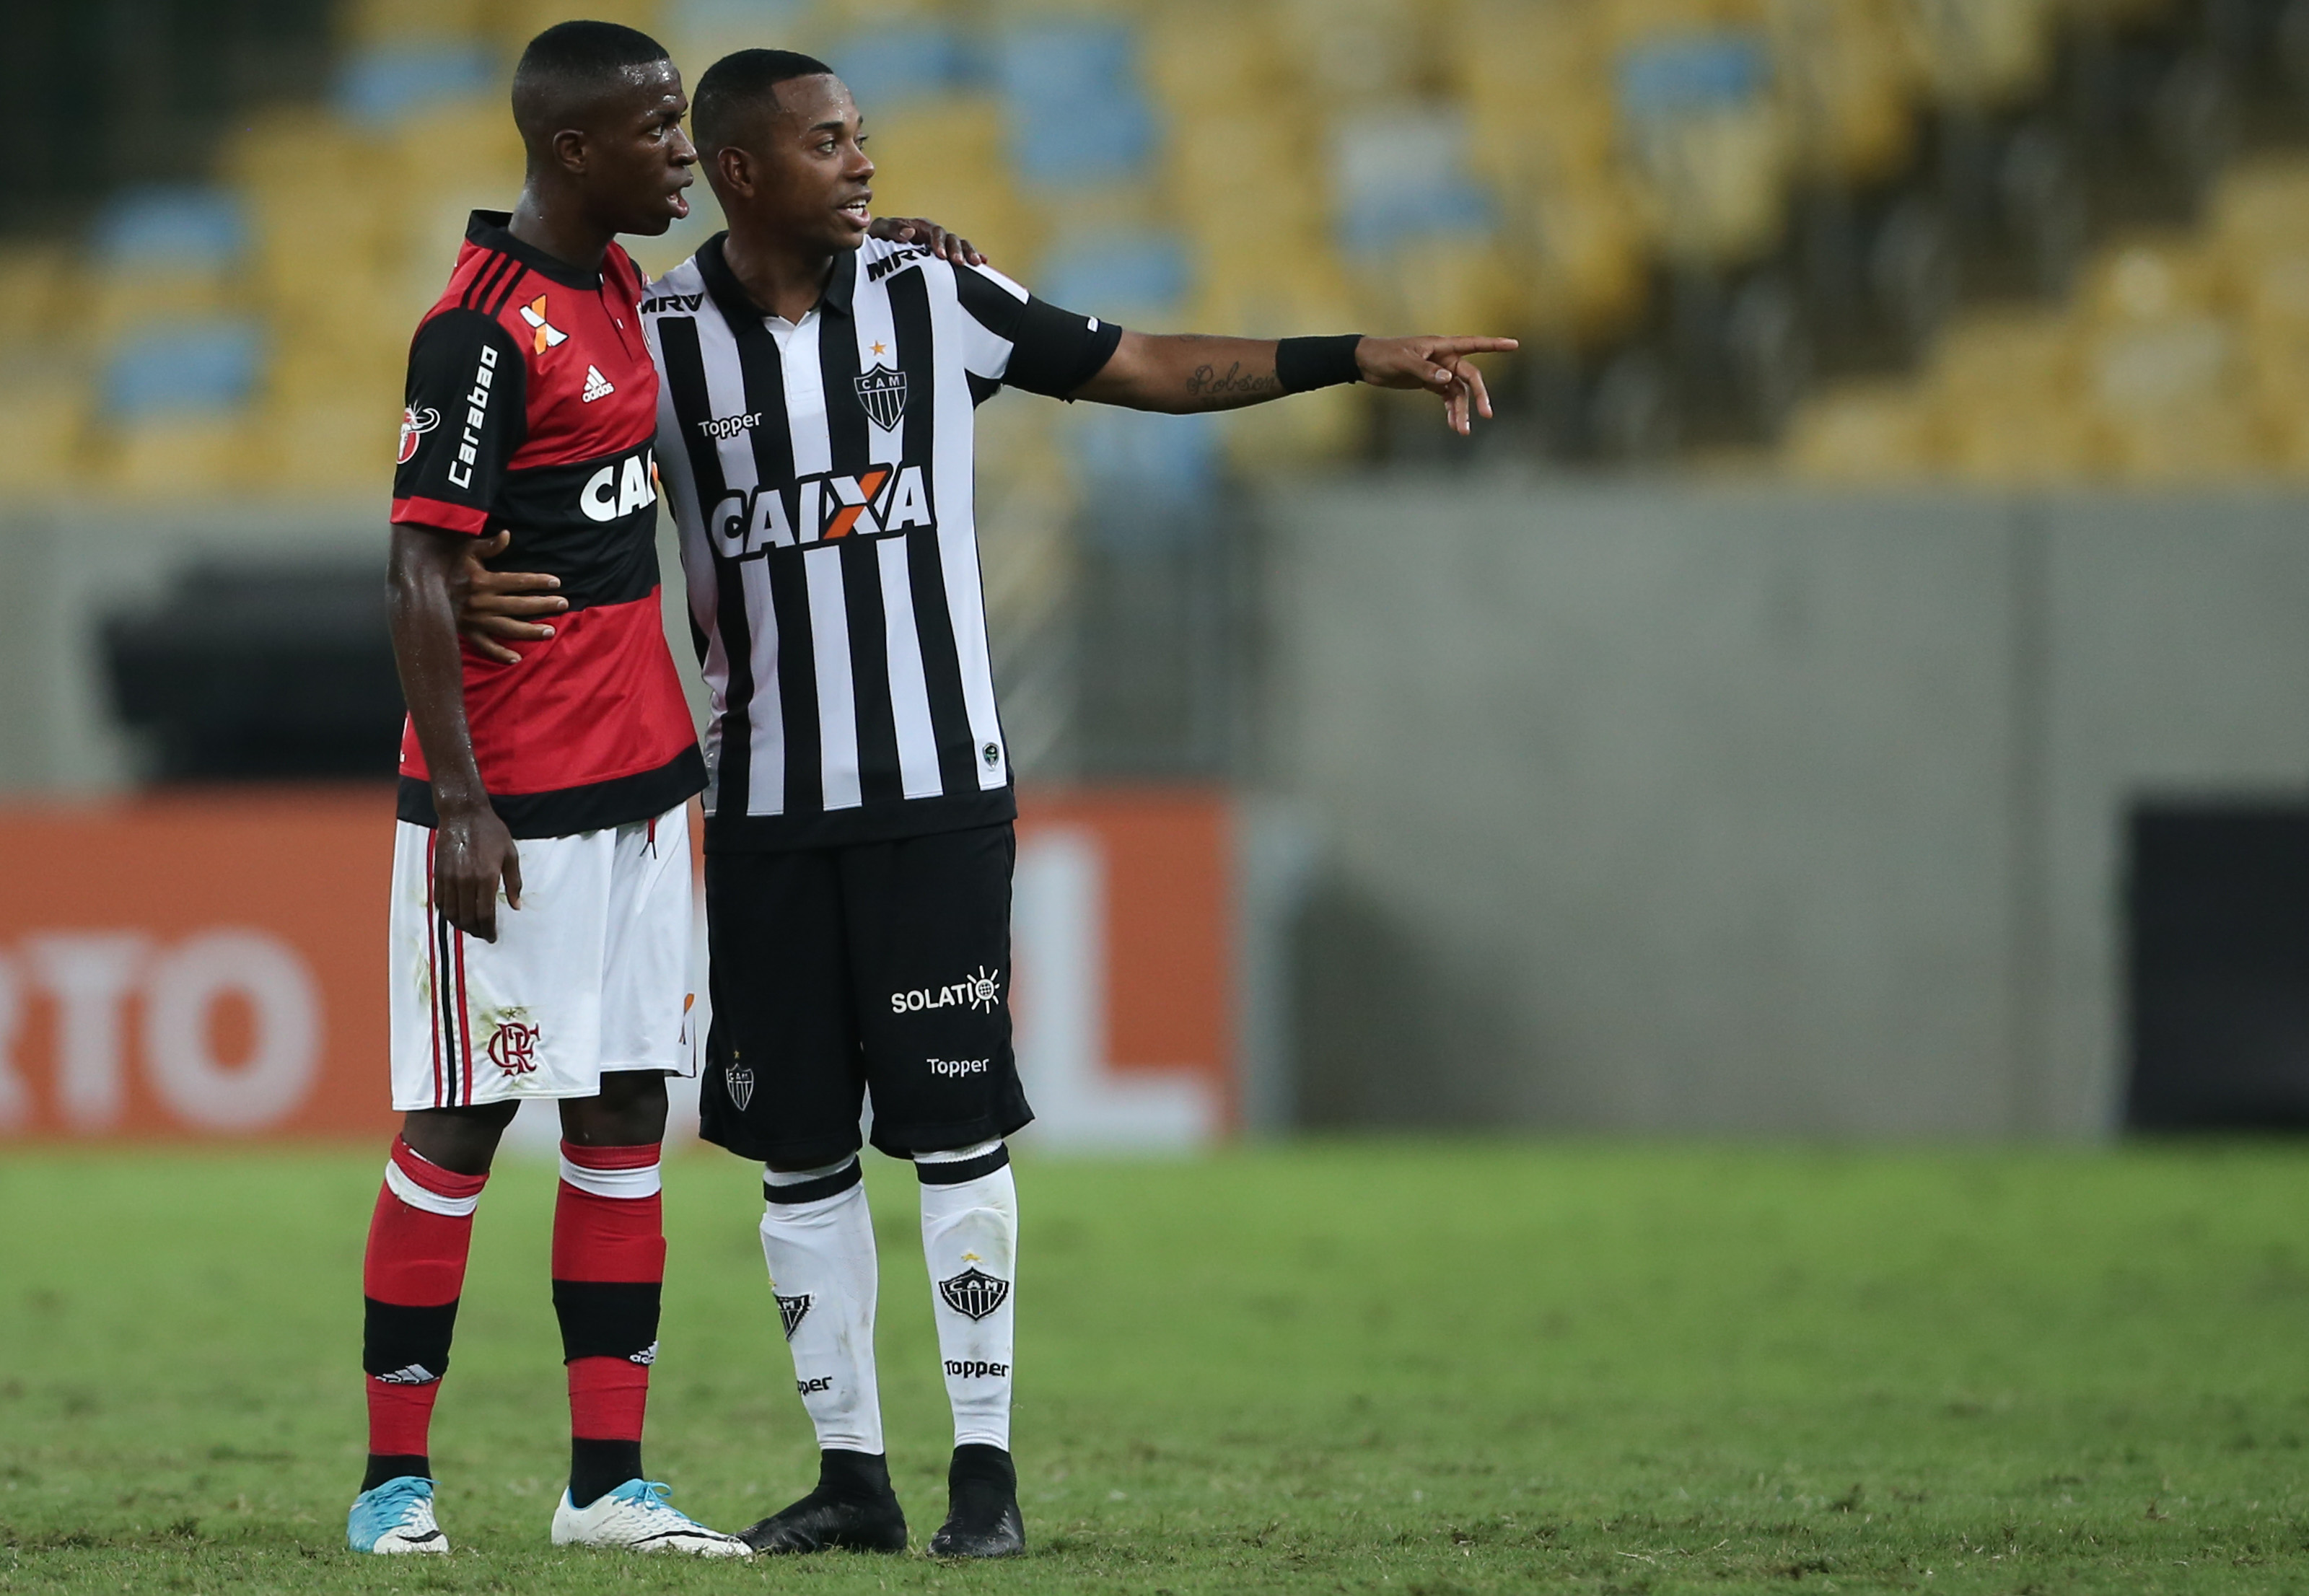 ¿Cuánto mide Robinho? - Altura - Real height Vinicius-Junior-and-Robinho